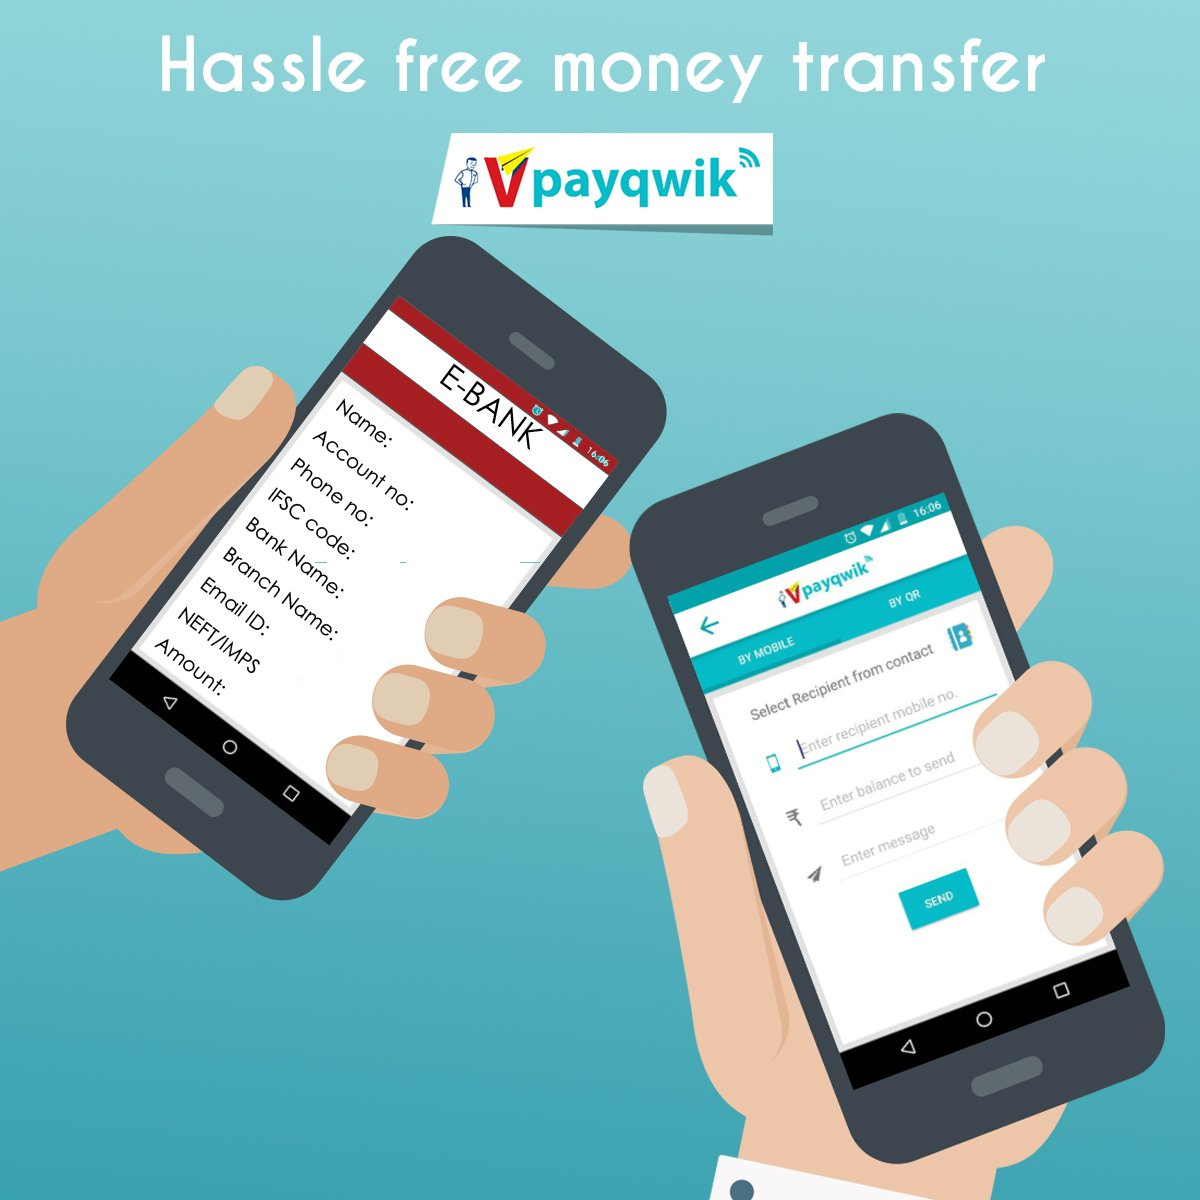 Transfer money through Mobile Number or QR Code. Download VPayQwik now. #DigitalWallet #Trust #MoneyTransfer<br>http://pic.twitter.com/iToU1EzwjY